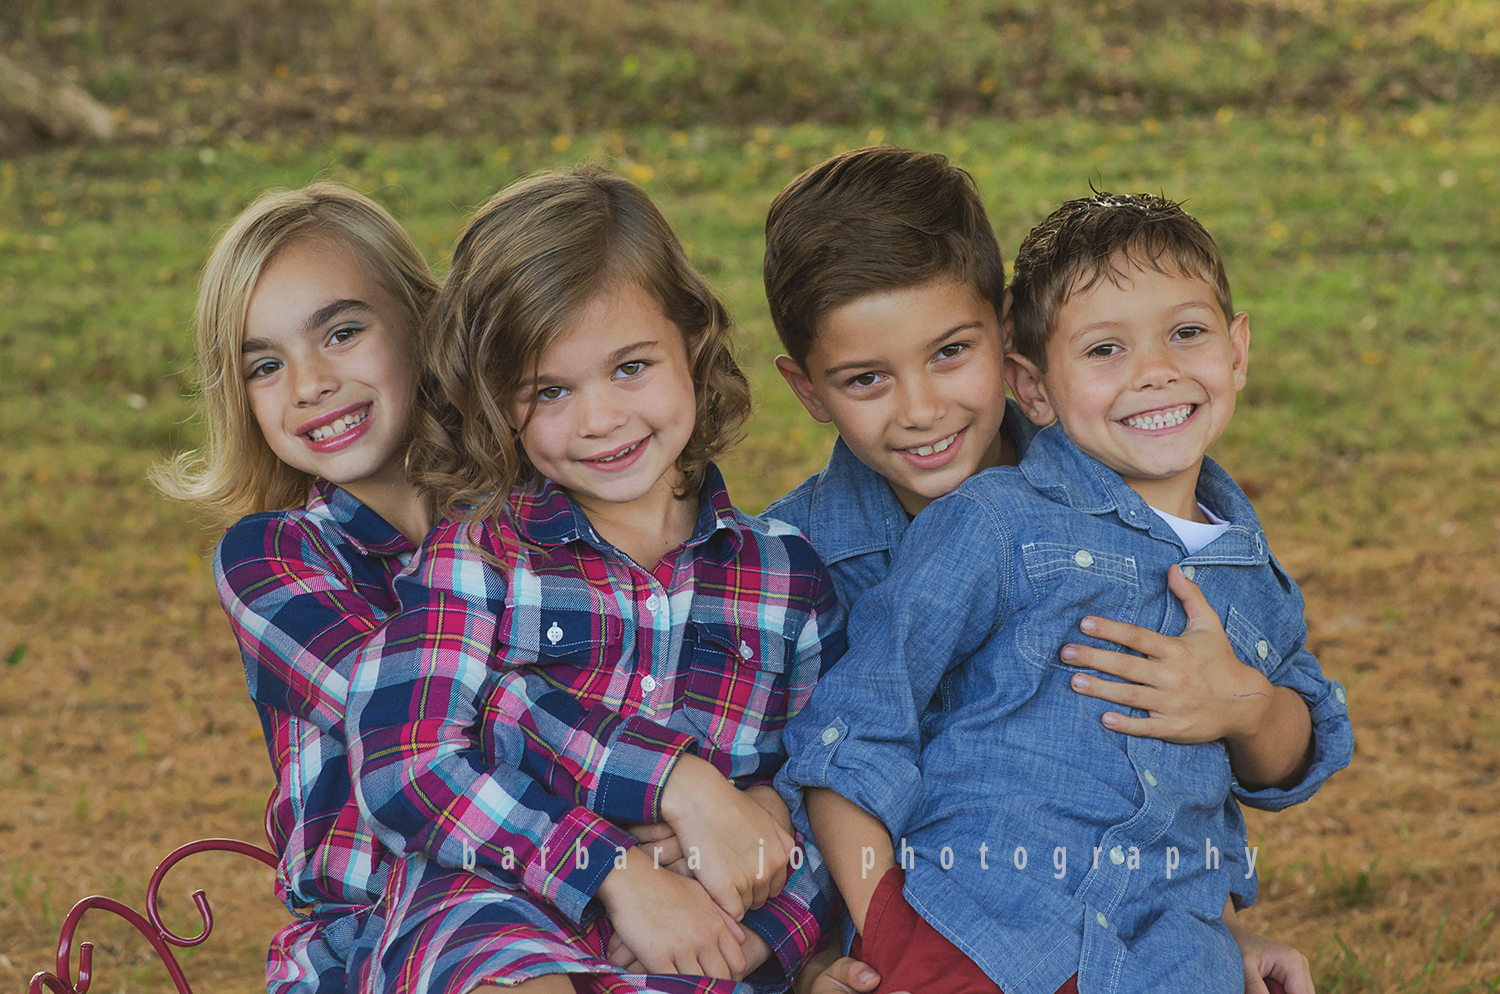 bjp-family-photographer-kids-siblings-blended-brothers-sisters-fall-mini-sessions-children-love-rachel1.png